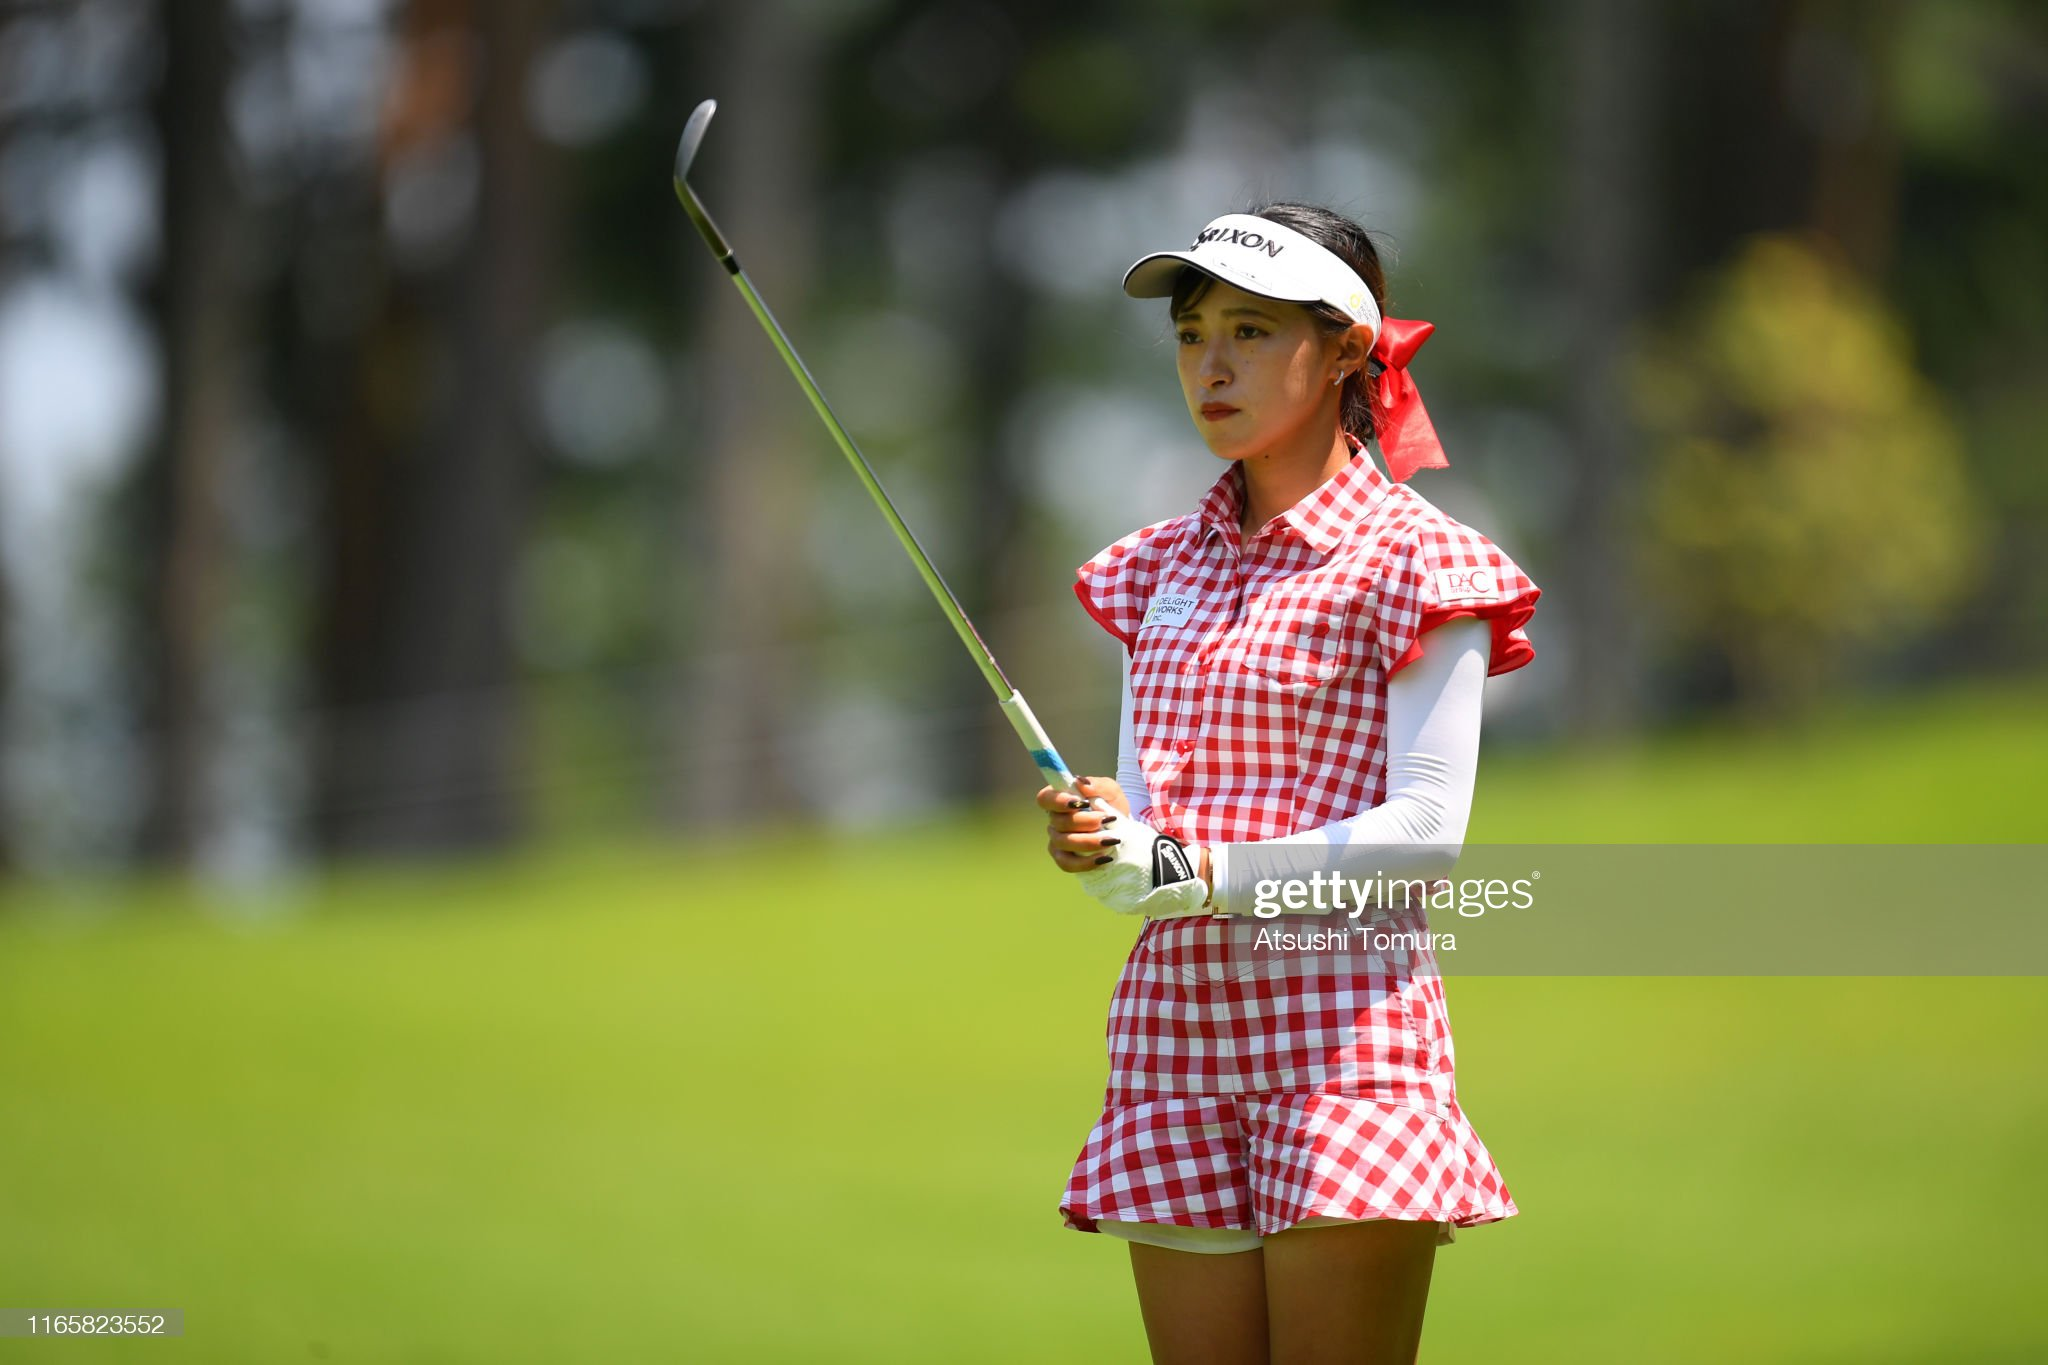 https://media.gettyimages.com/photos/reika-usui-of-japan-prepares-for-her-third-shot-on-the-10th-hole-the-picture-id1165823552?s=2048x2048